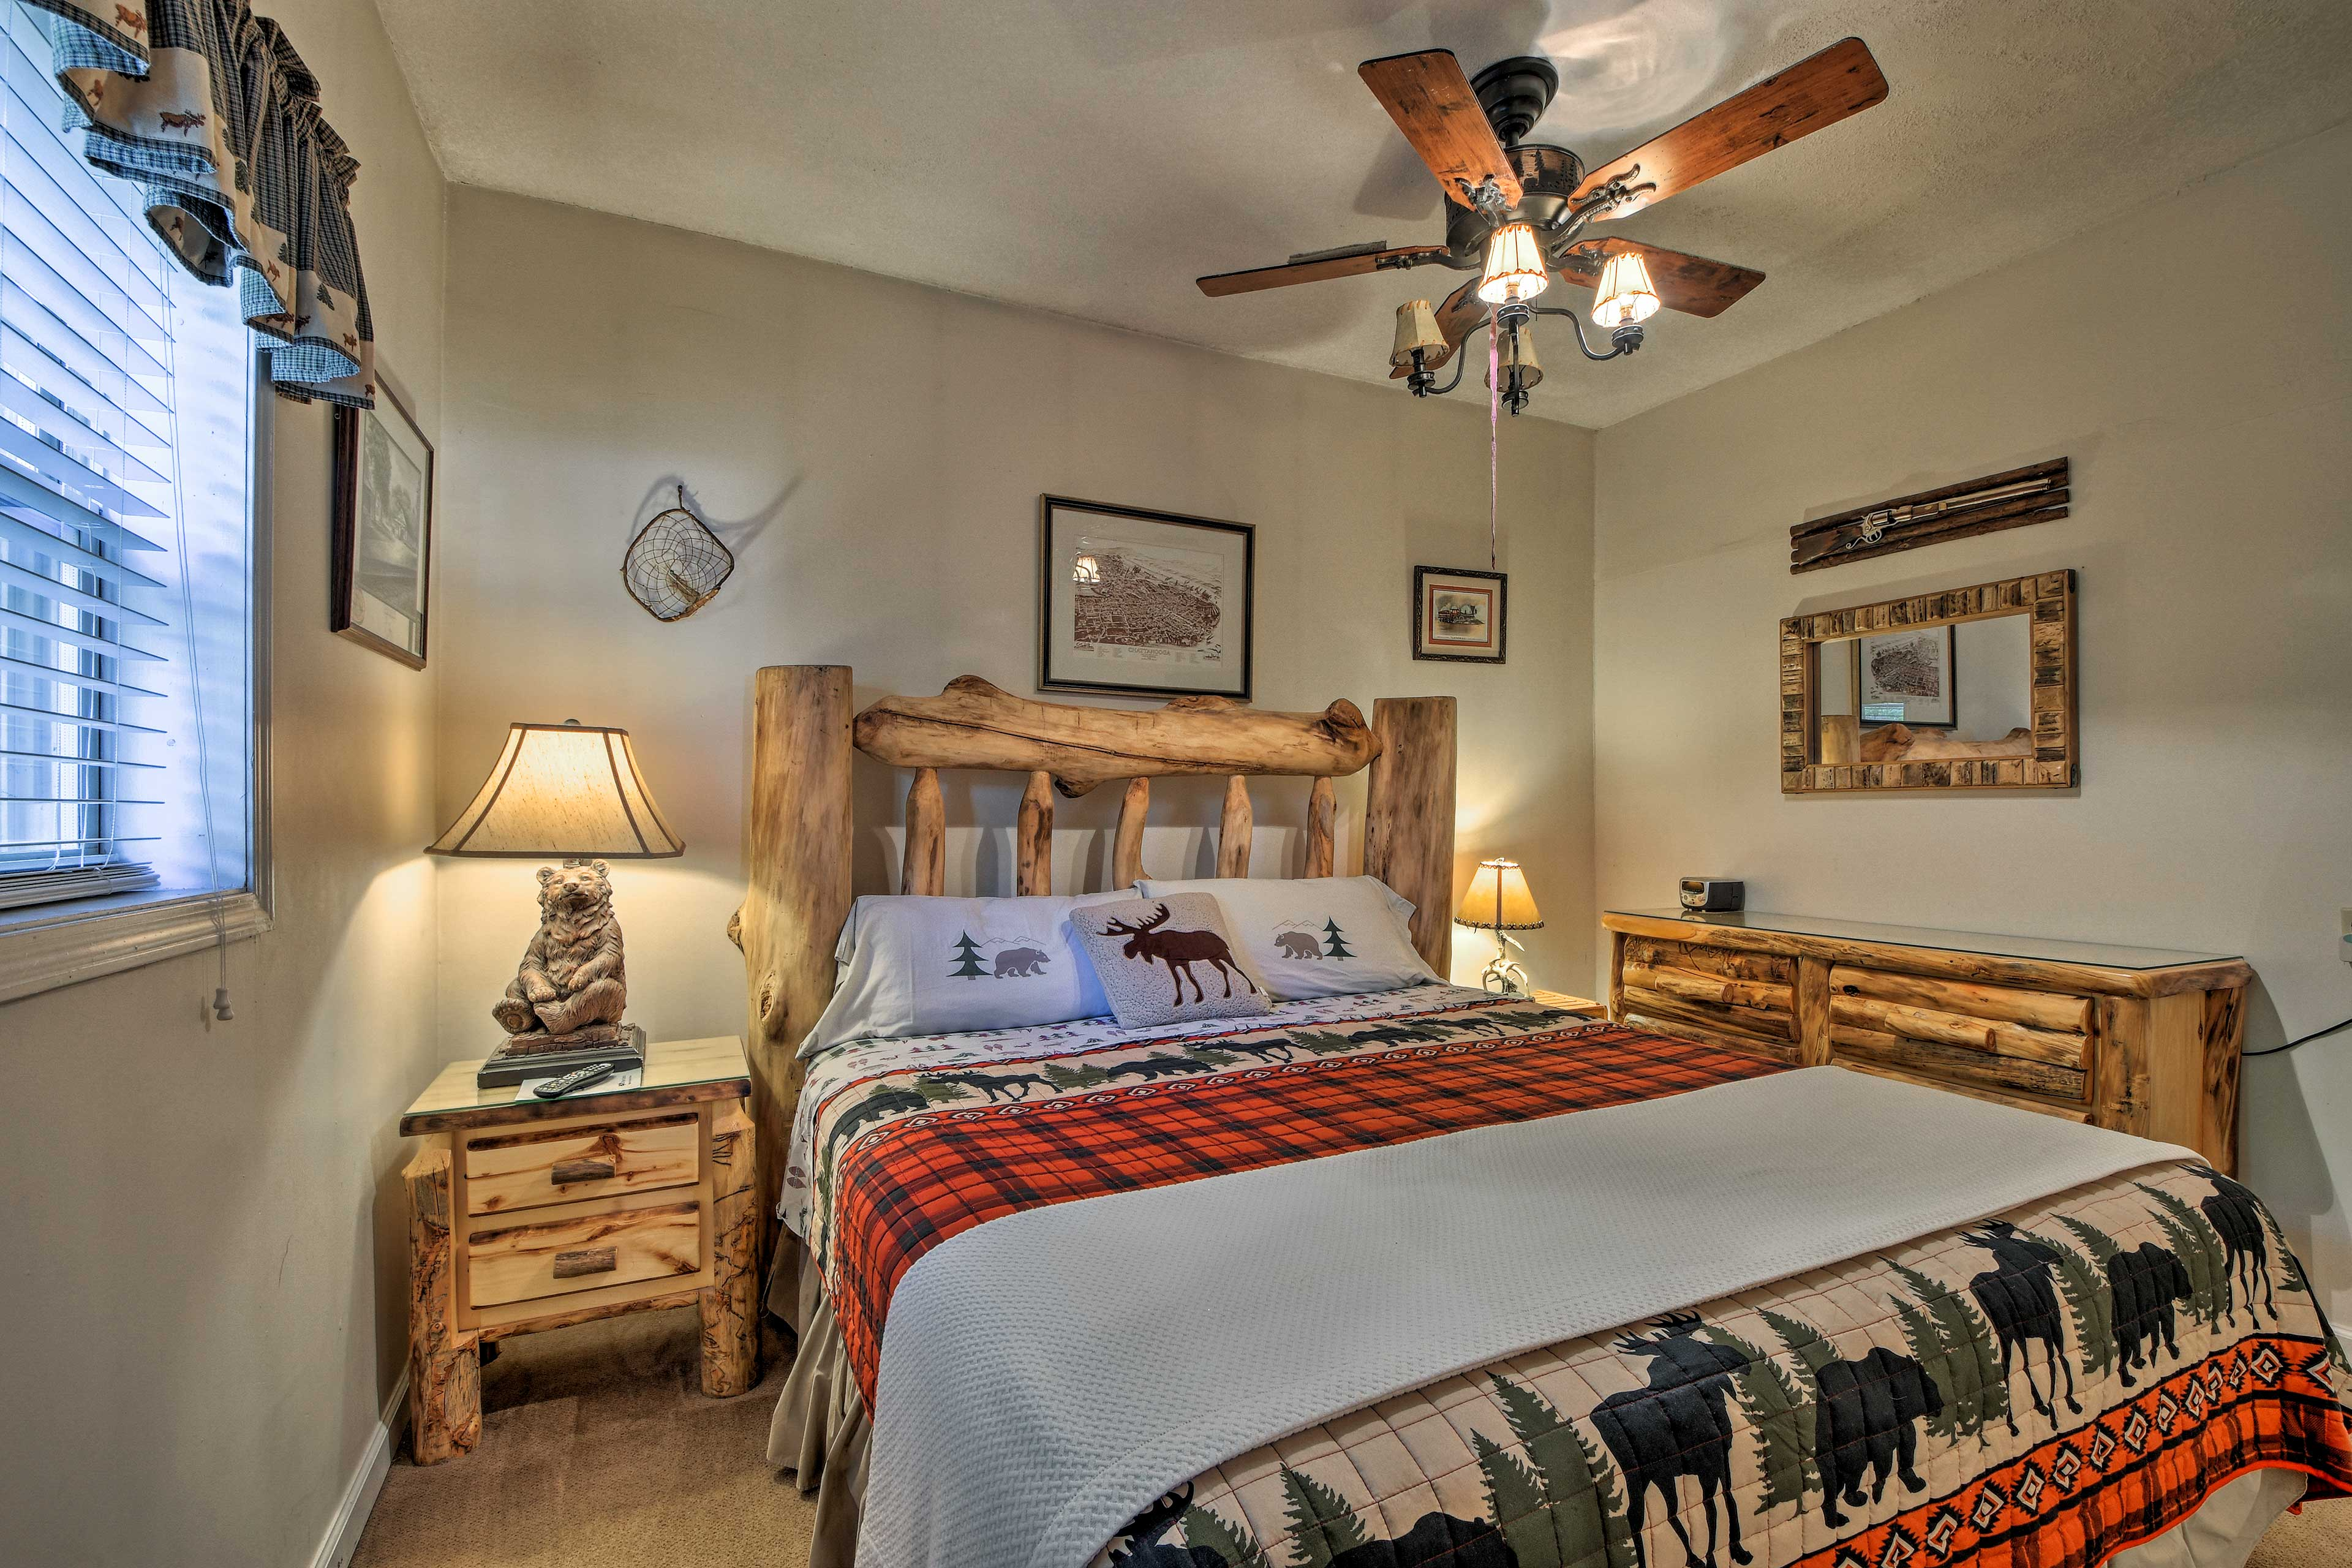 This queen bed easily accommodates 2 guests.